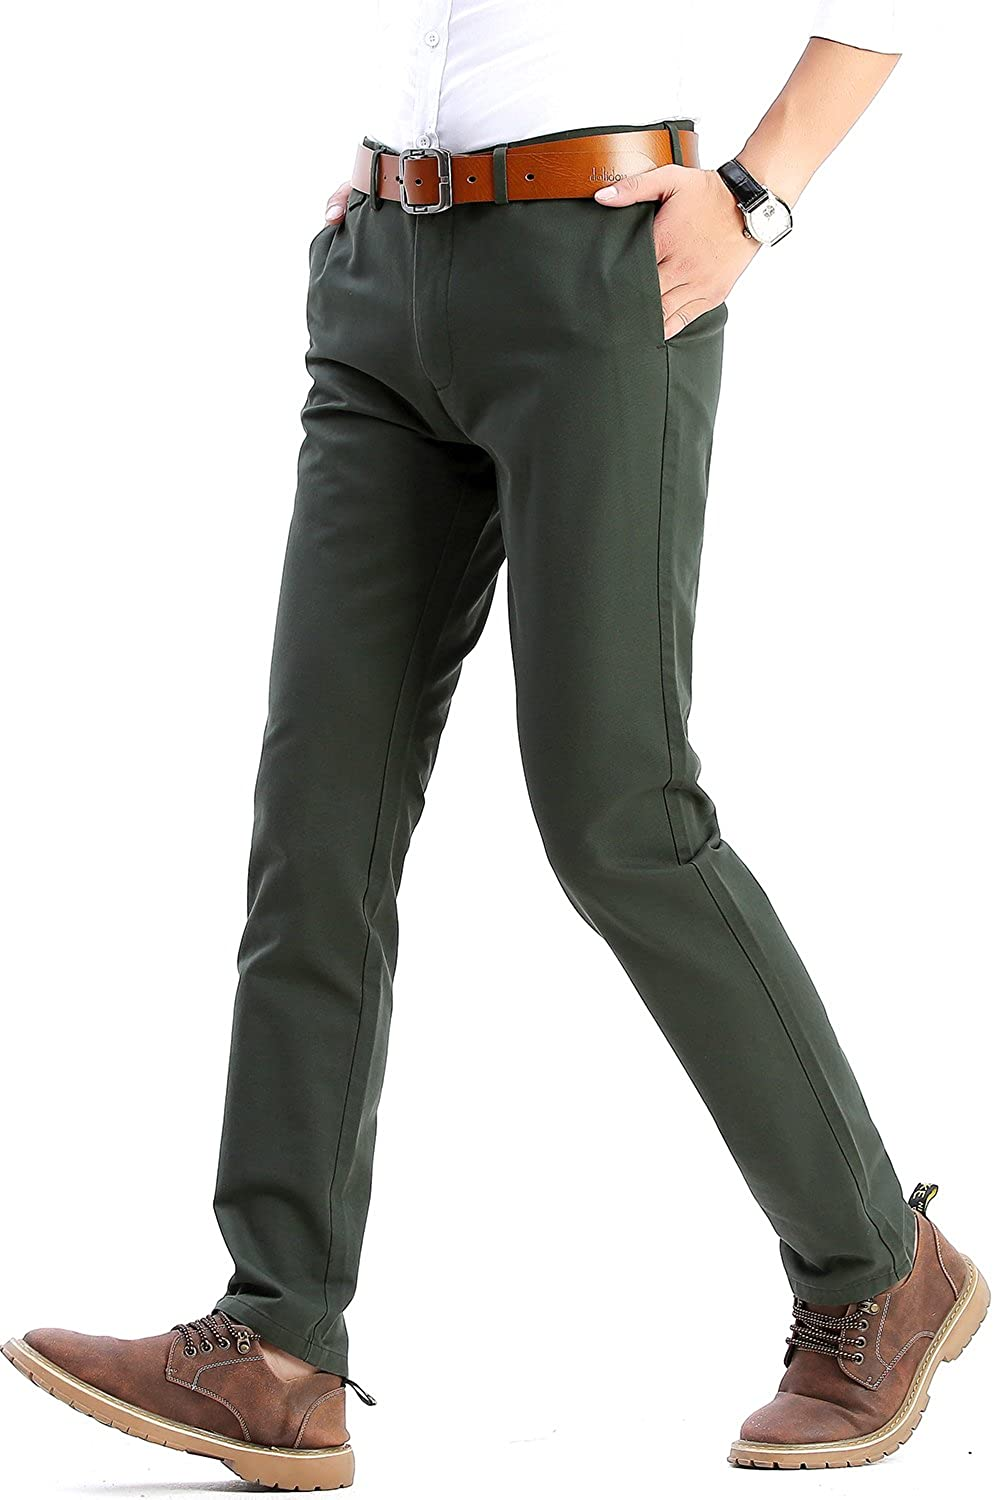 Harrms Mens Slim Fit Casual Twill Pants 100% Cotton Flat Front Tapered Work Pants, 21 Colors, Size 29-40 MH102-HRSHAR2